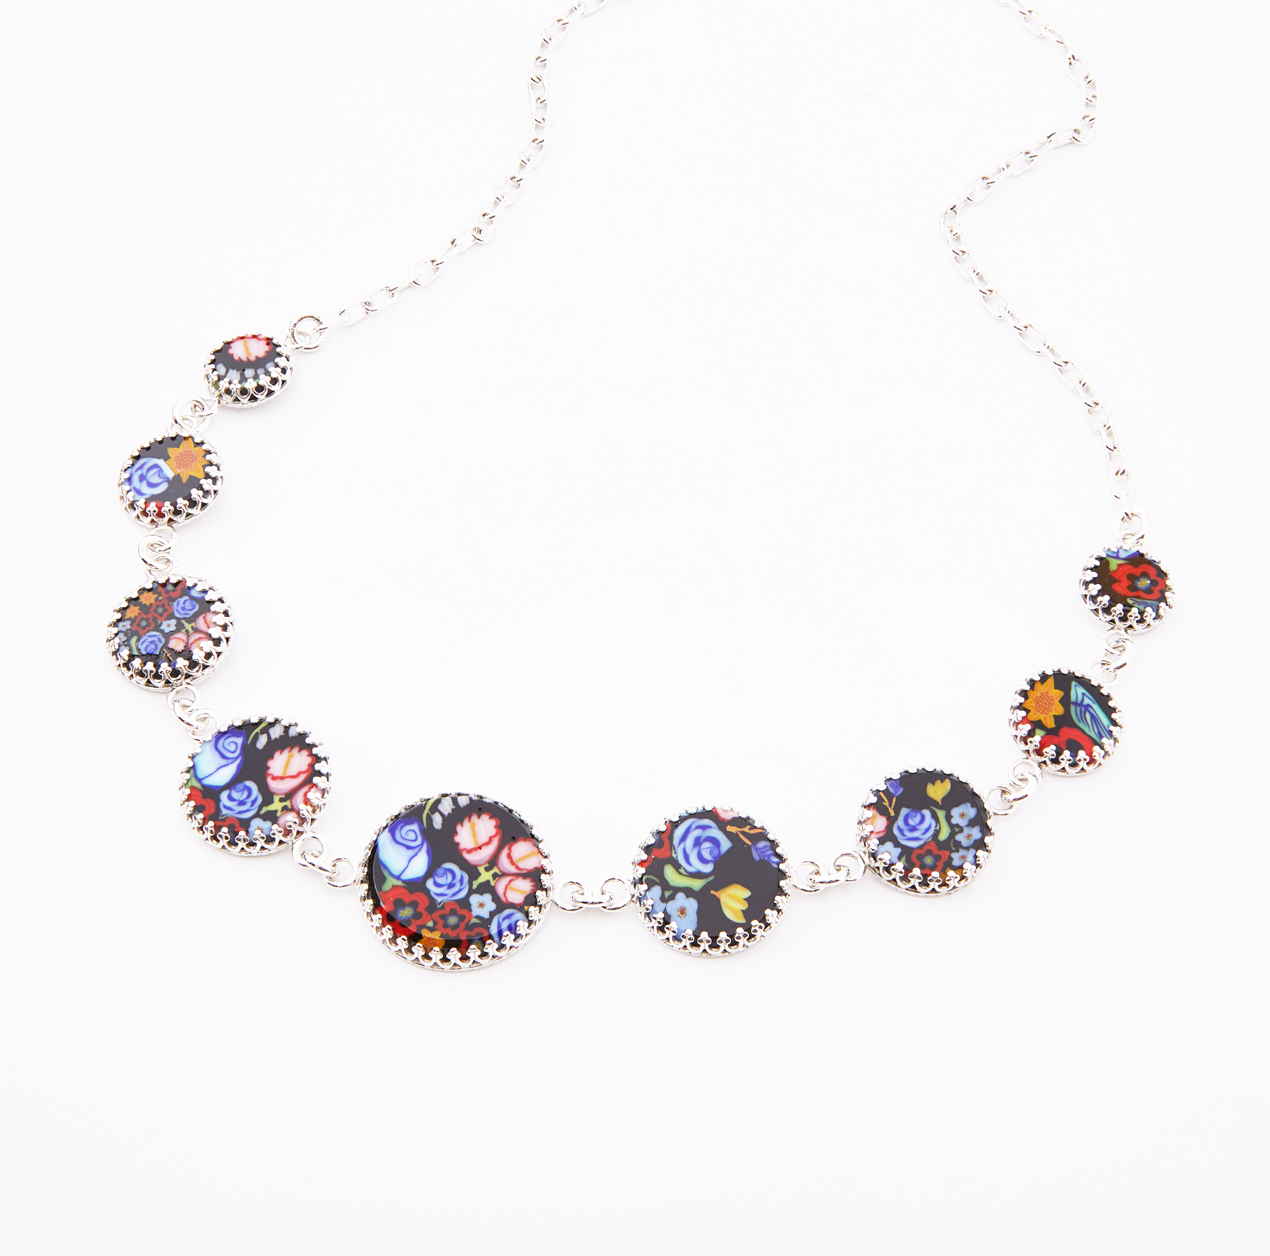 Botanical Murrine Cane Necklace, 2018